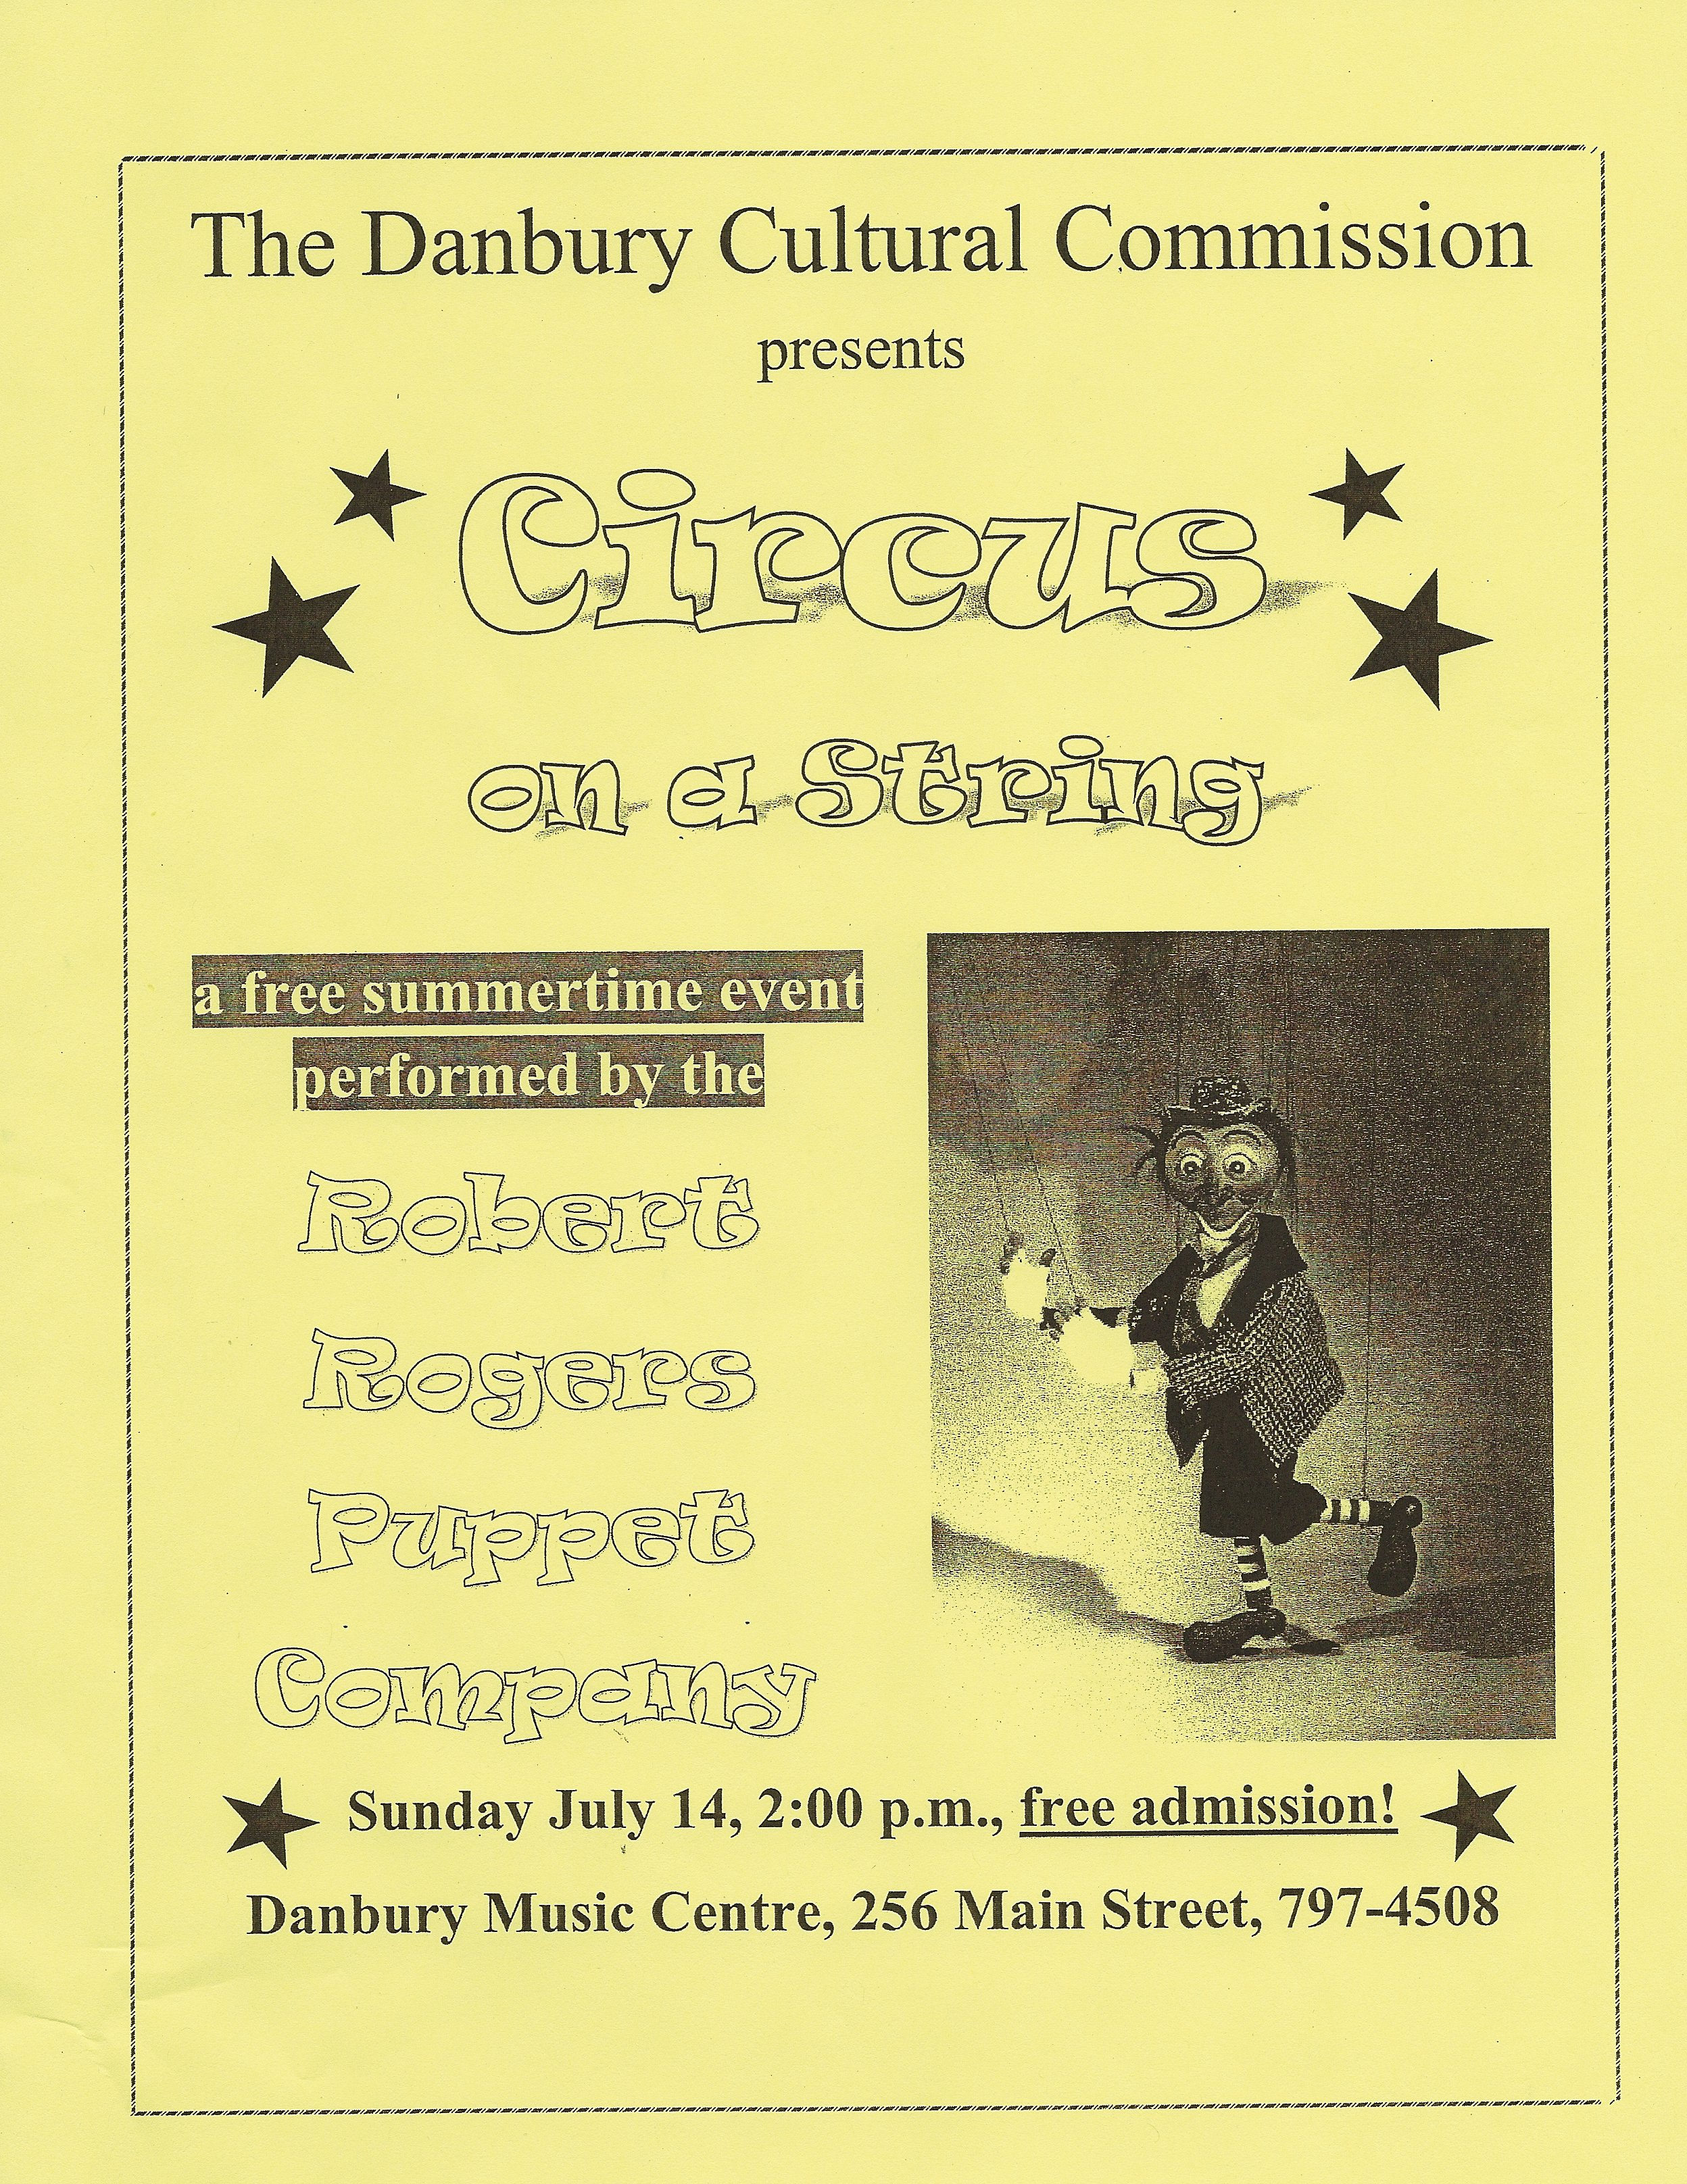 """ Circus on a string ""  on July 14 at 2:00 P.M. in the Danbury Music Centre located at 256 Main  Street. Admission is FREE."